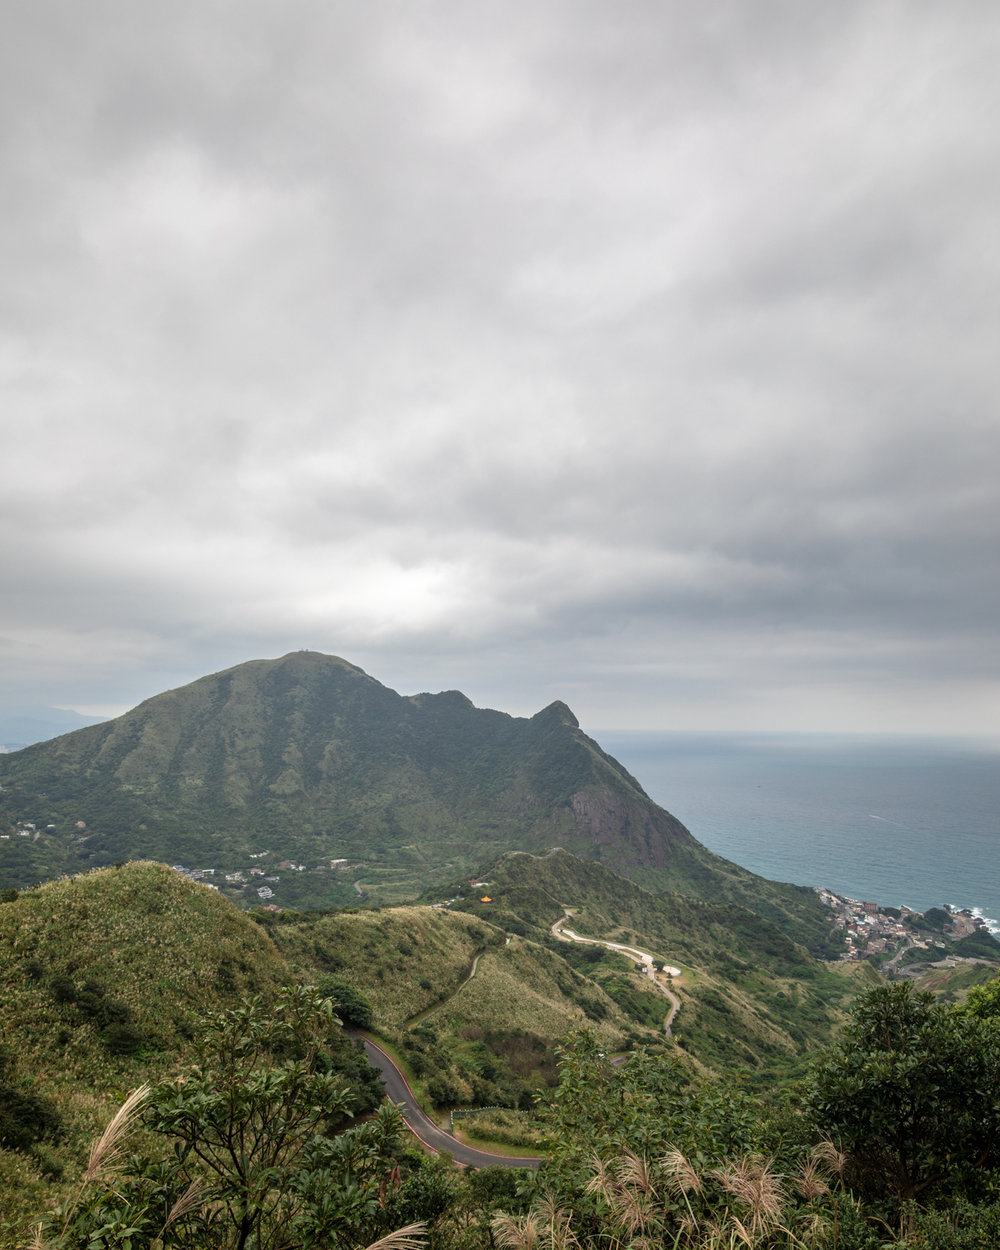 The views out to sea in Jiufen